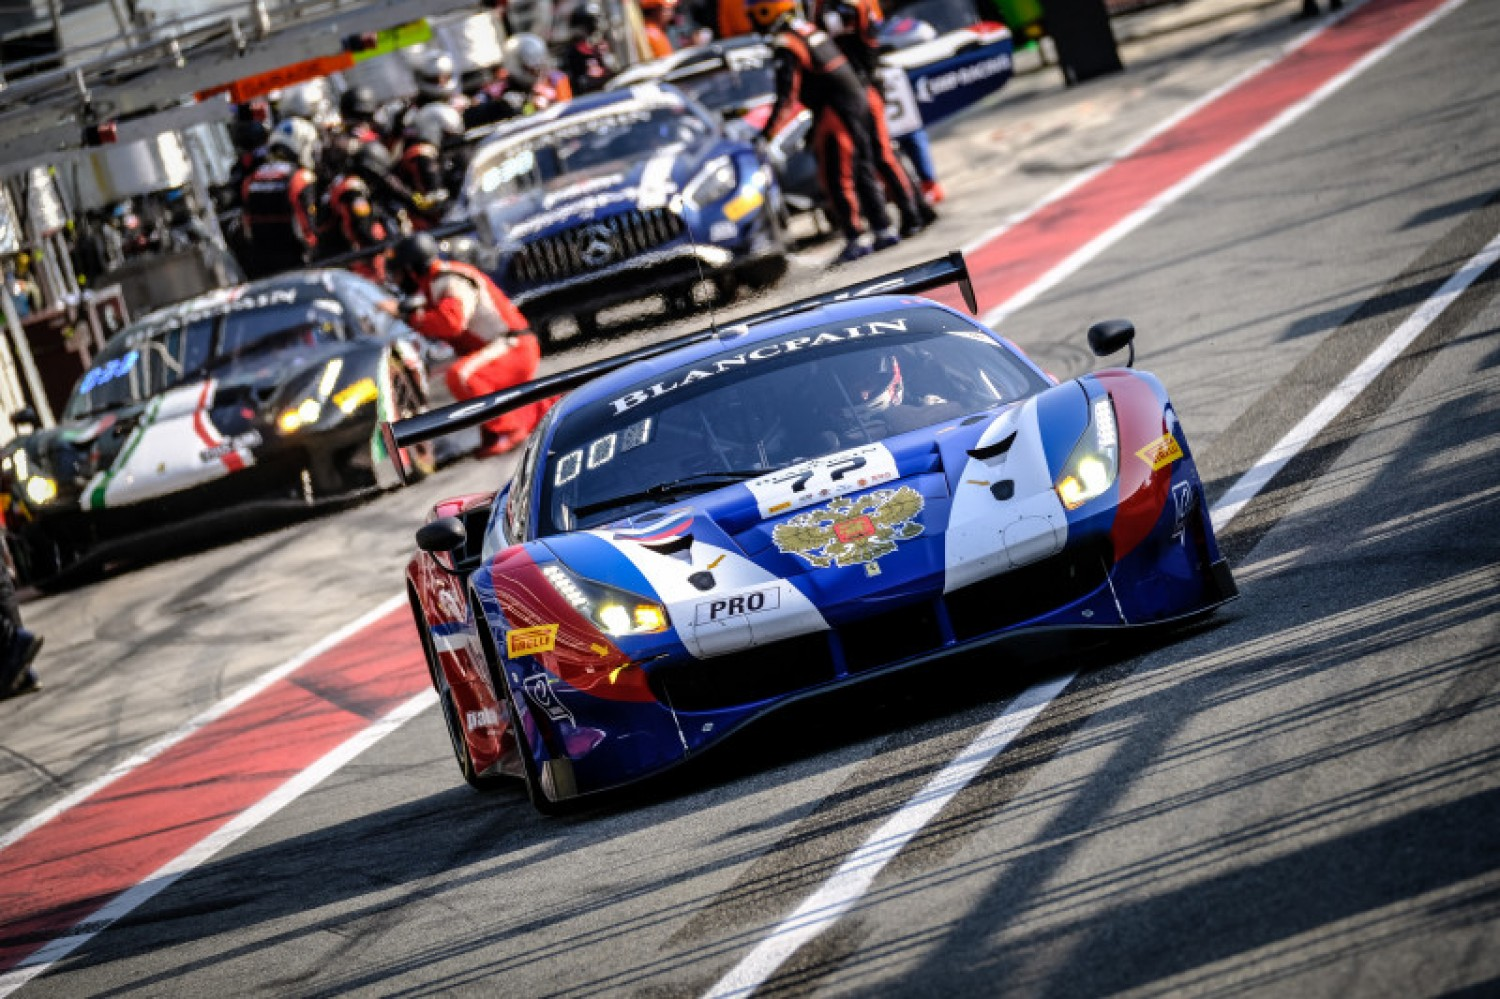 Team effort from SMP Racing puts Ferrari on pole at Monza